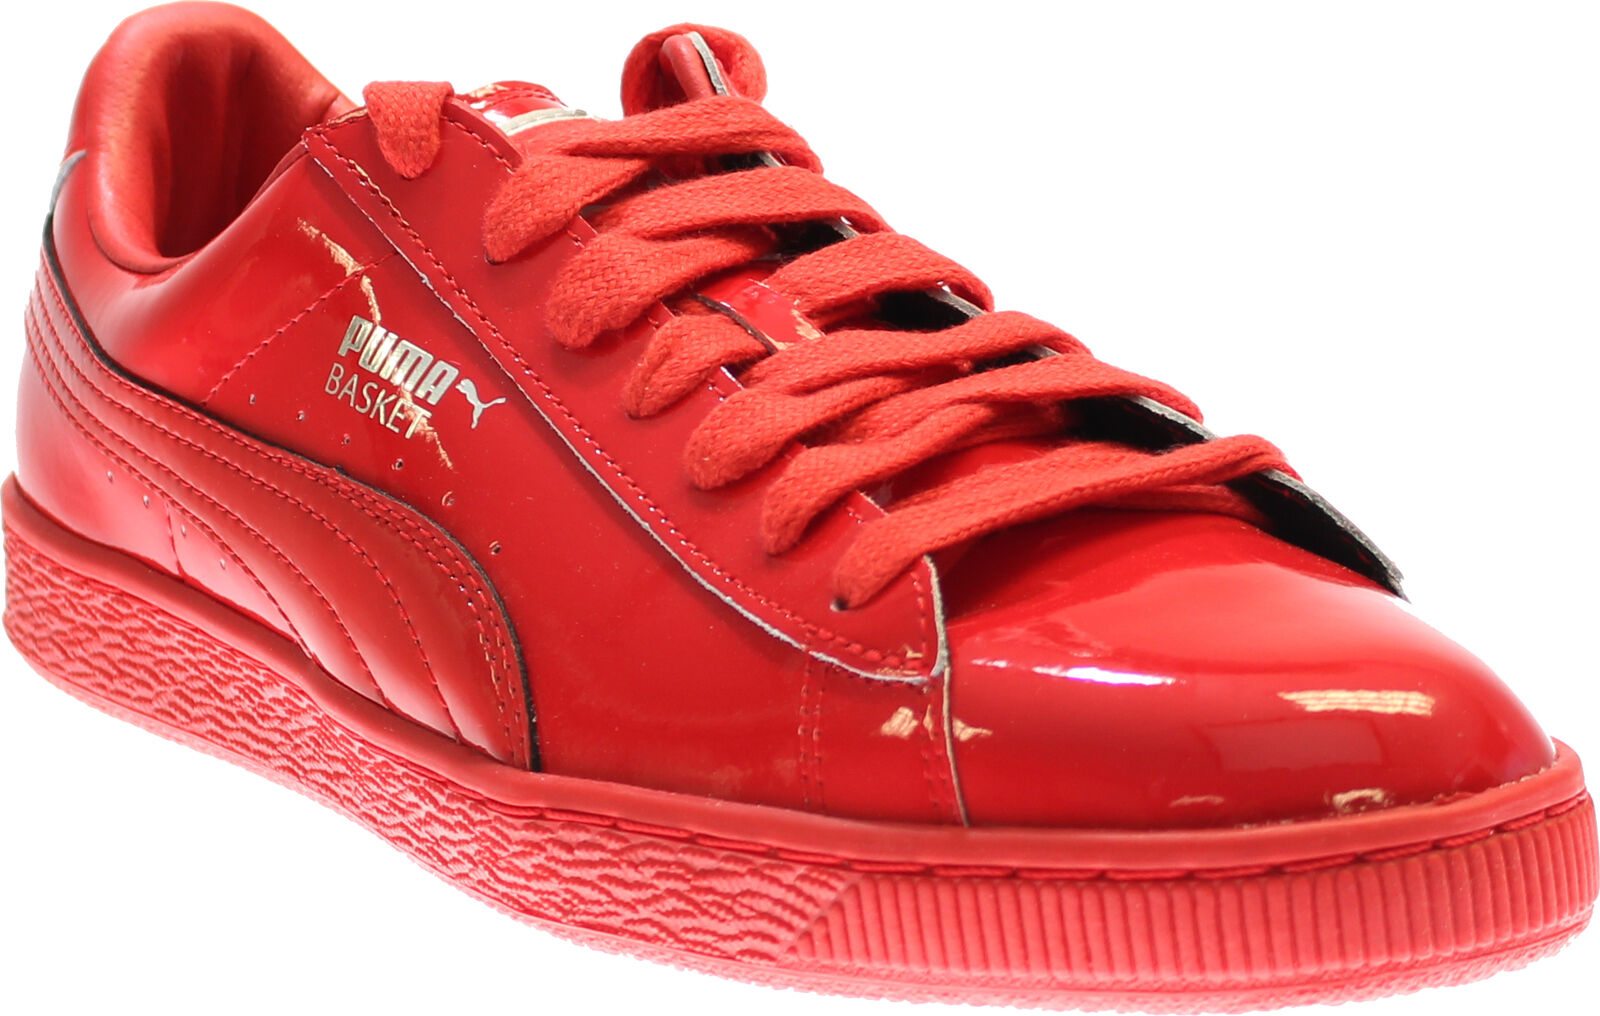 9f7fa769dc2b PUMA Basket Matte   Shine Mens Red Patent Leather Lace up SNEAKERS ...